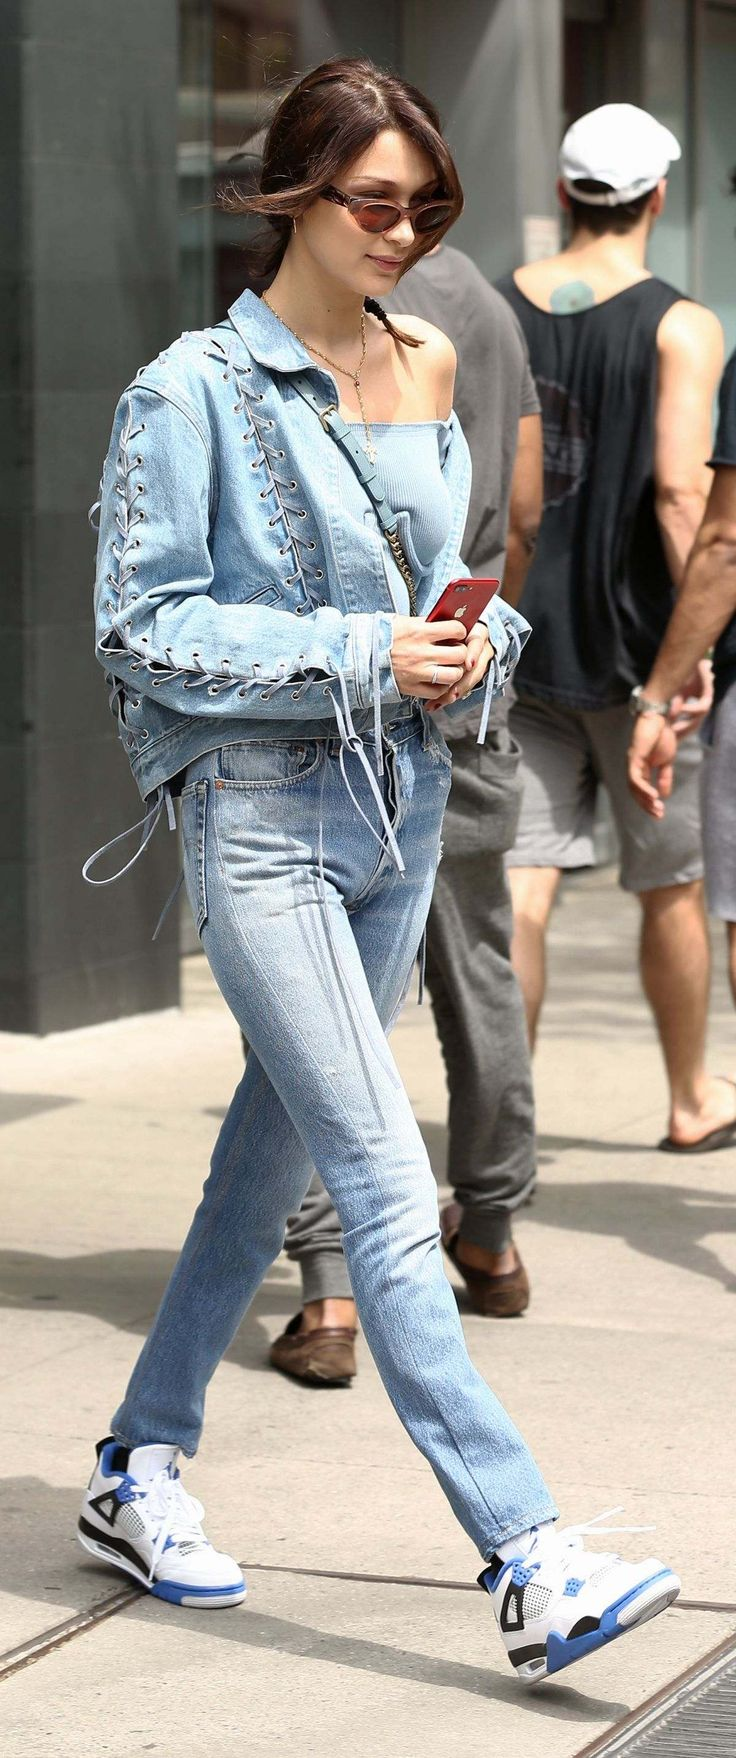 Bella Hadid In Jeans leaving Her Apartment In New York